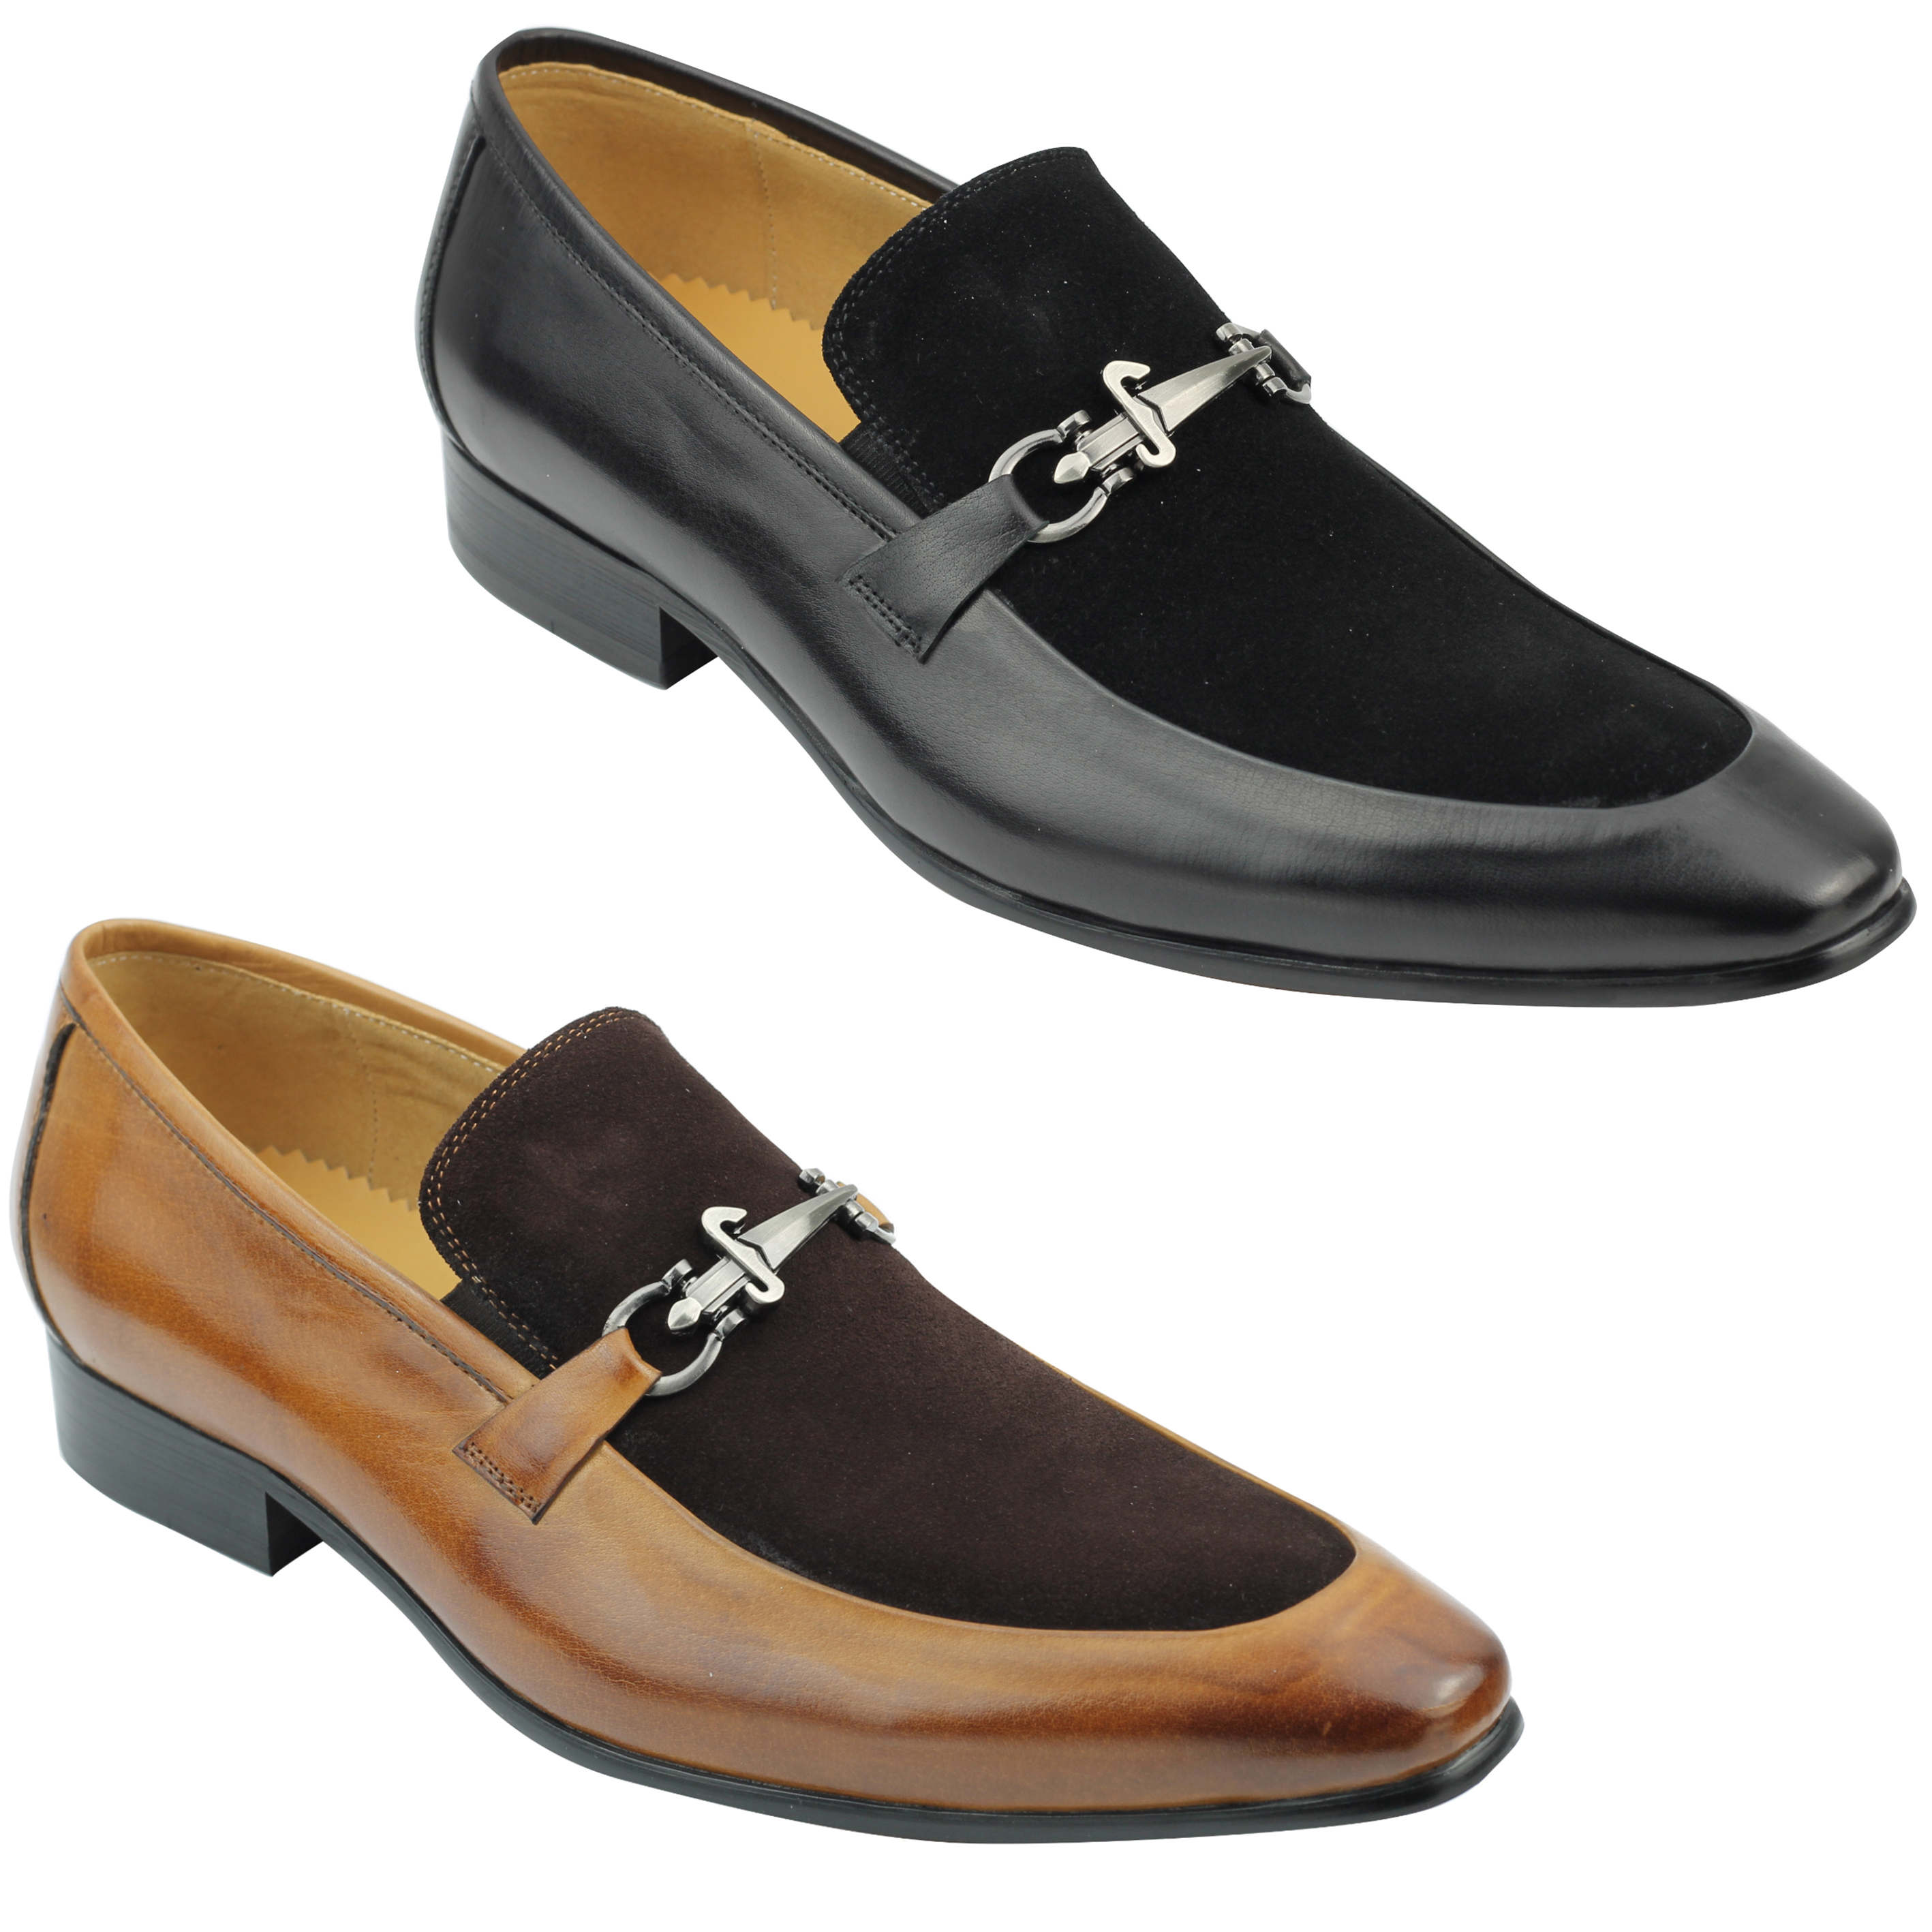 aa4de159501 Details about Mens Real Suede Leather Loafers Italian Style Smart Casual  Dress Slip on Shoes